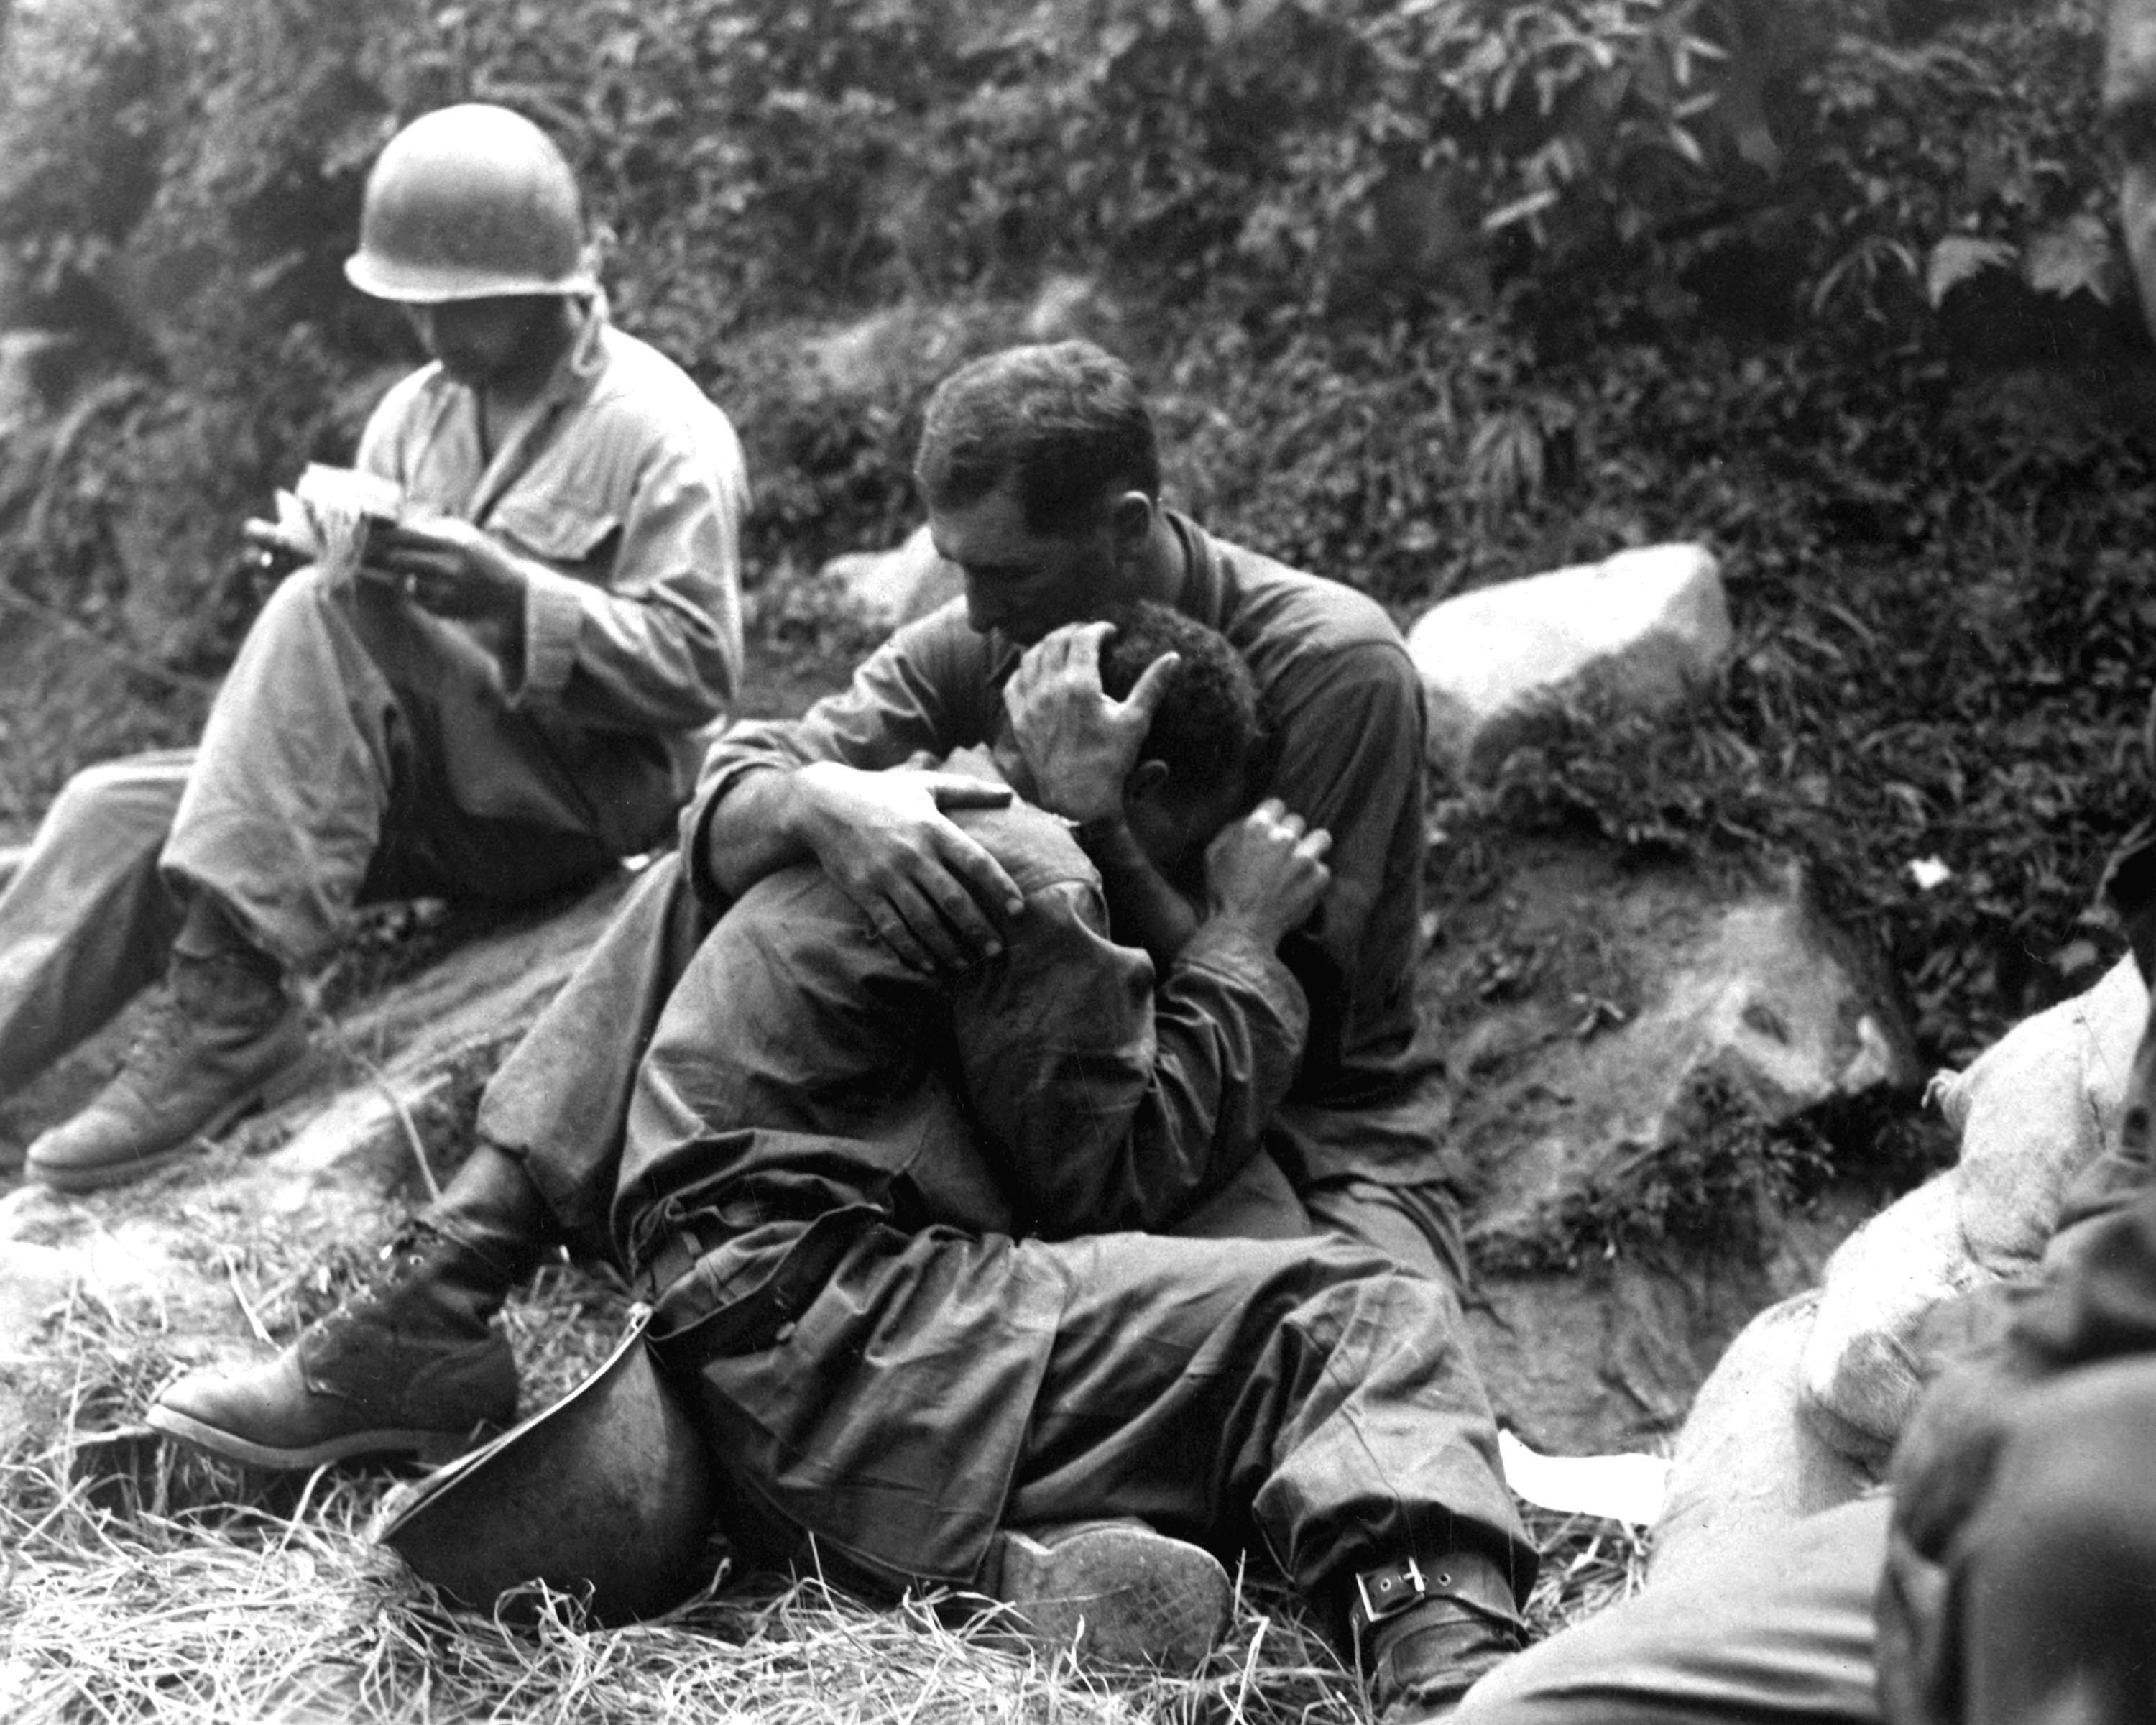 A grief stricken American infantryman whose buddy has been killed in action is comforted by another soldier. In the background a corpsman methodically fills out casualty